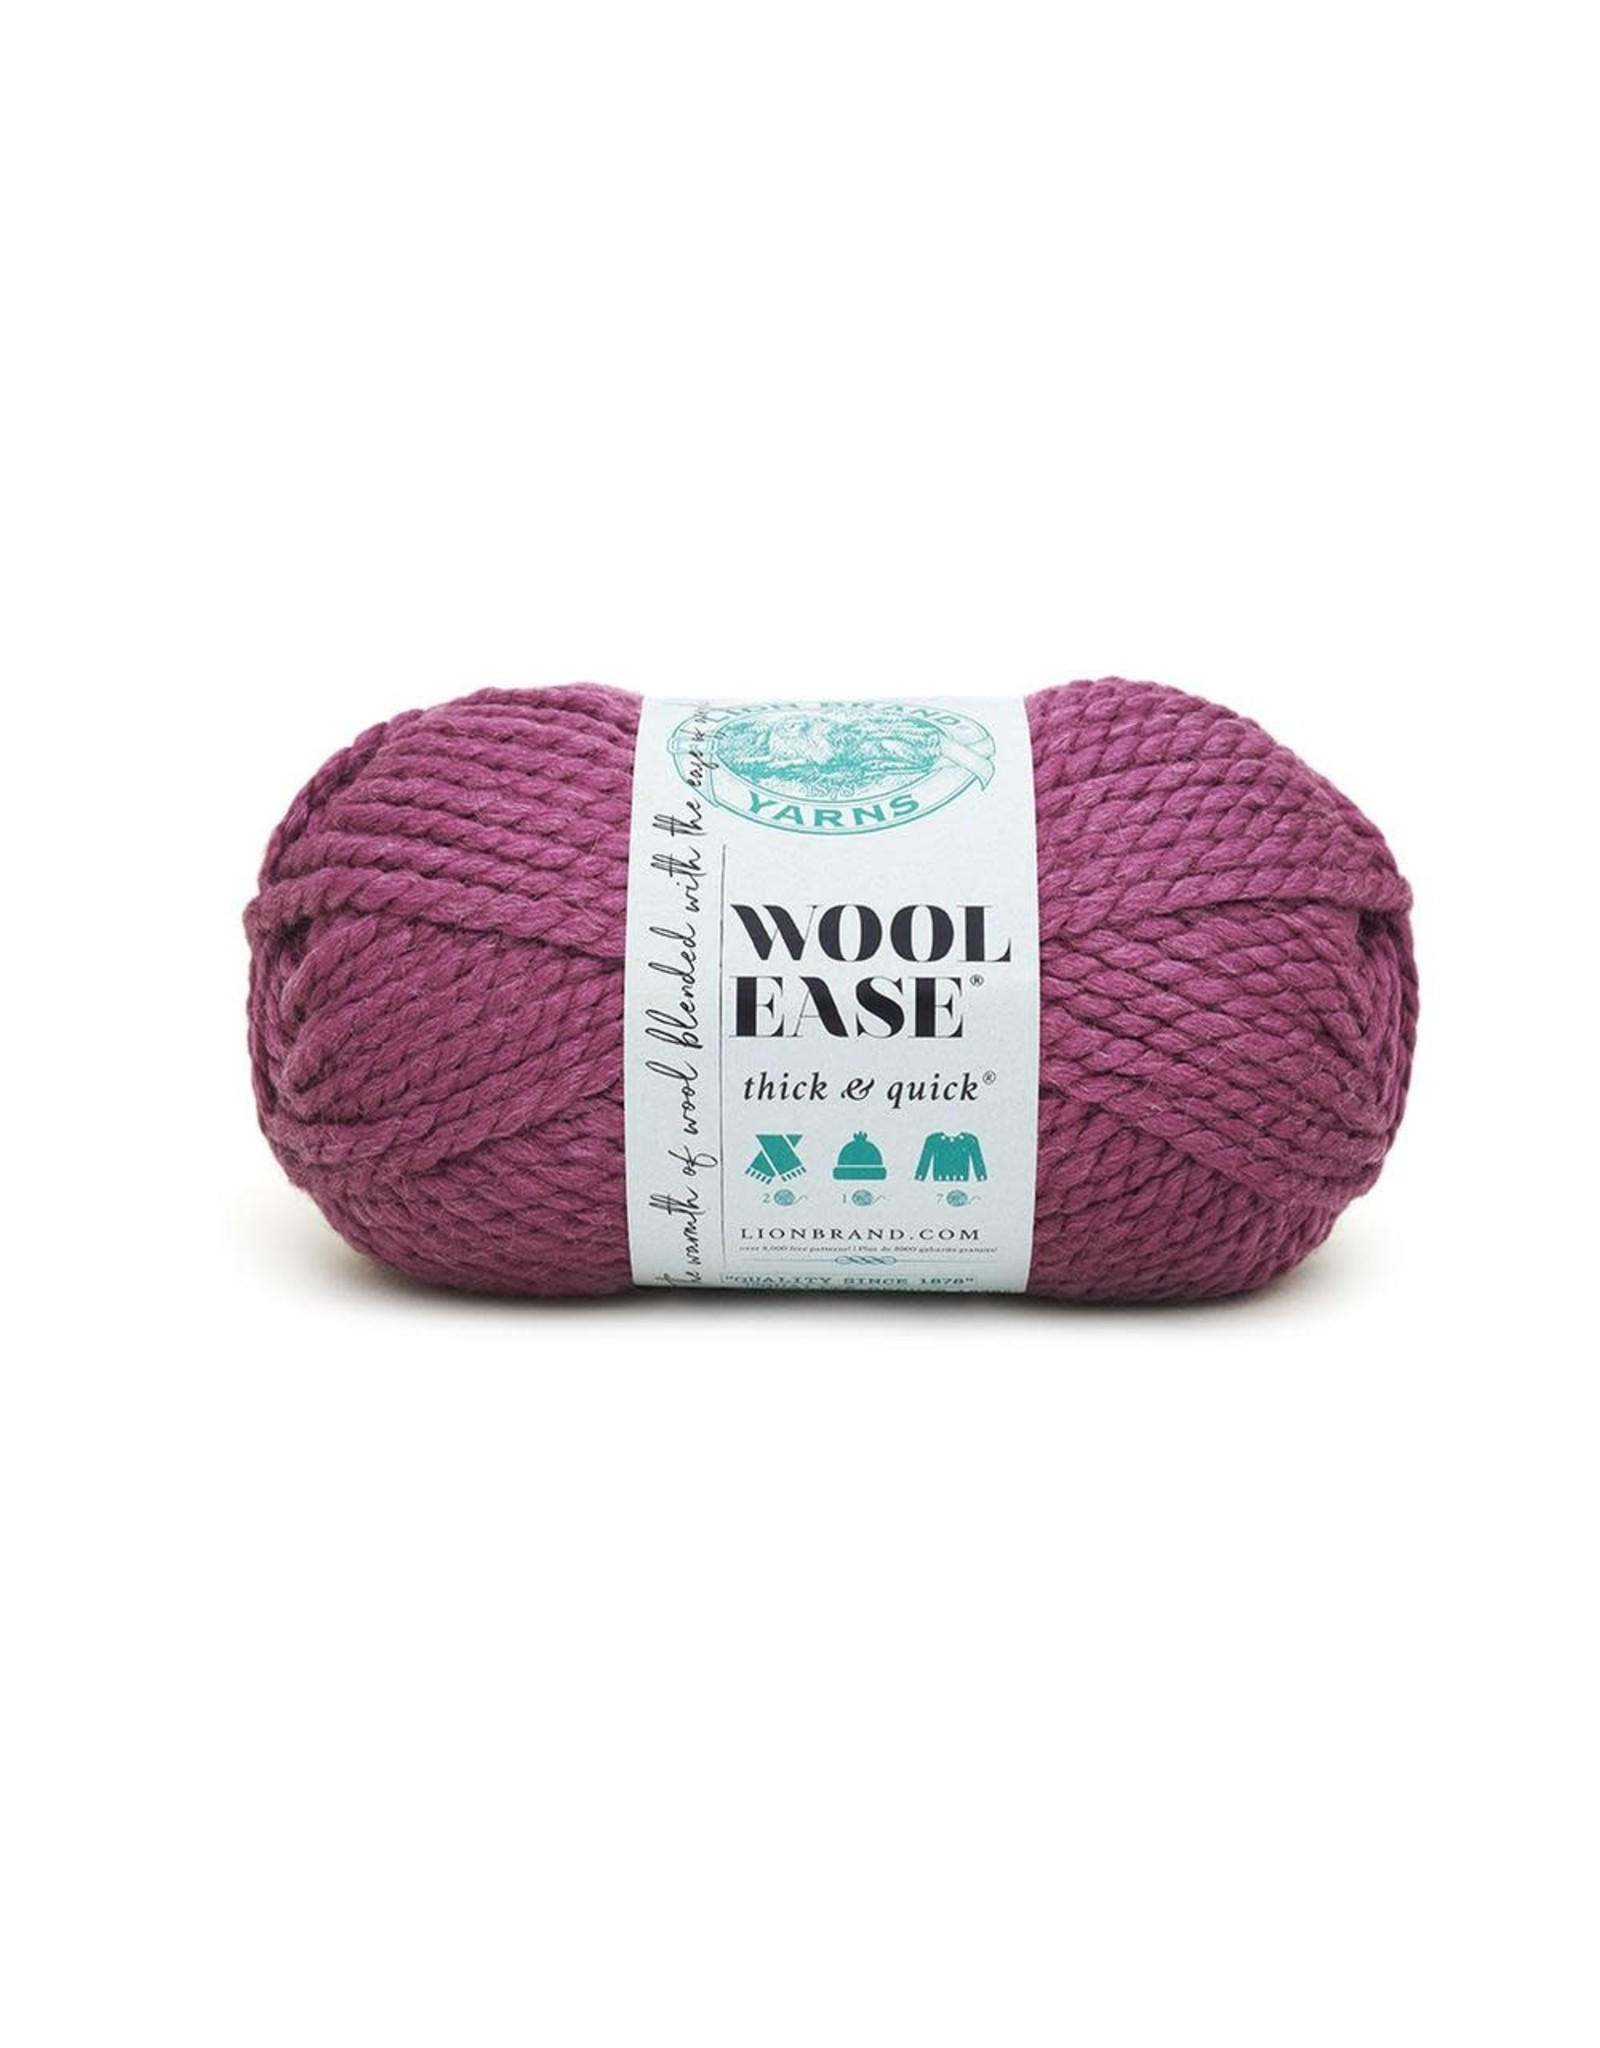 Fig - Wool Ease Thick and Quick - Lion Brand